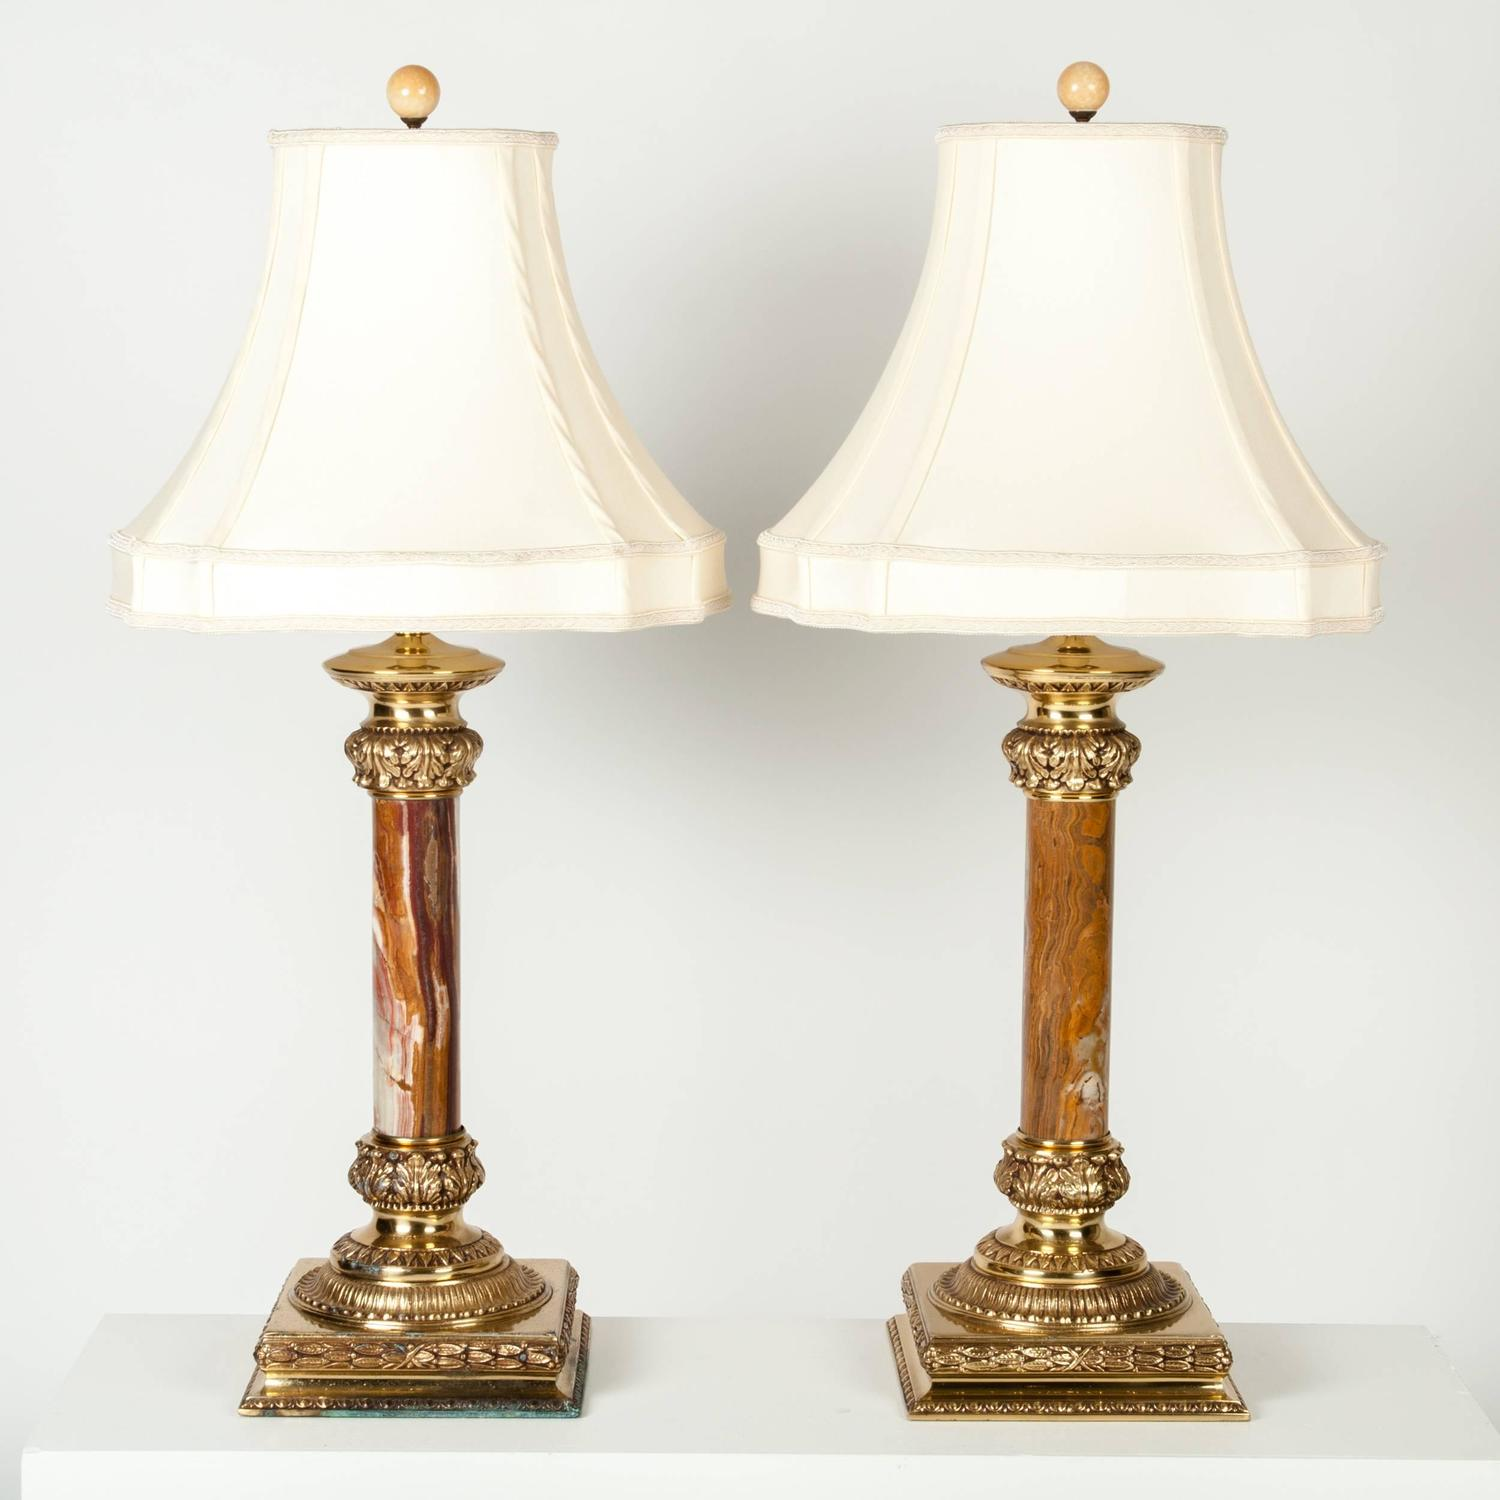 Mid century ginger jar lamp pair at 1stdibs - Antique Pair Of Jade Lamps With Solid Brass Base For Sale